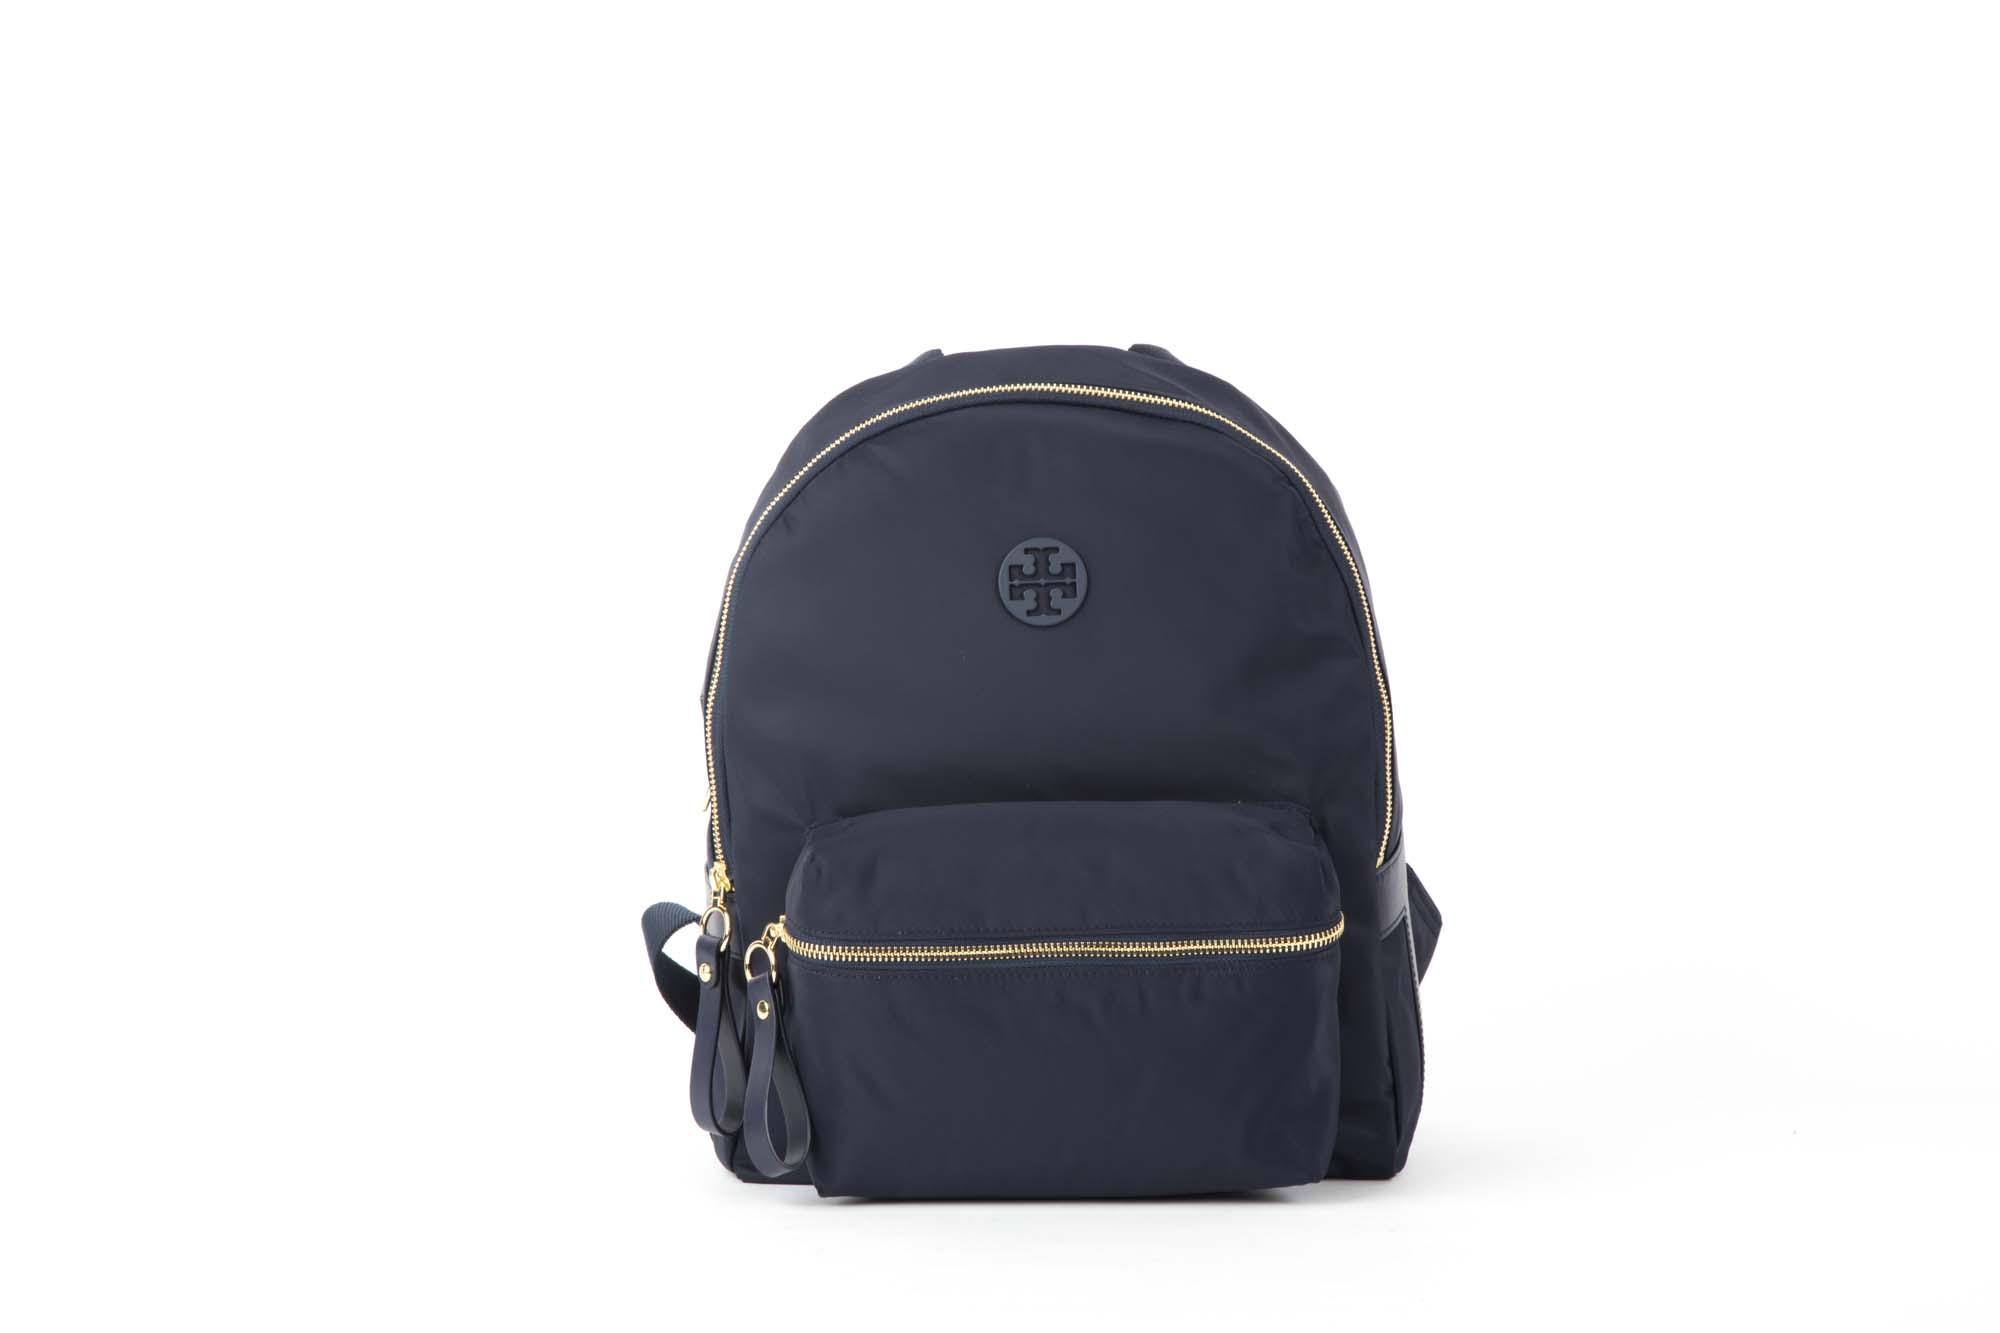 06c2ab138e50 Tory Burch Nylon Backpack - Backpack For Your Vacations